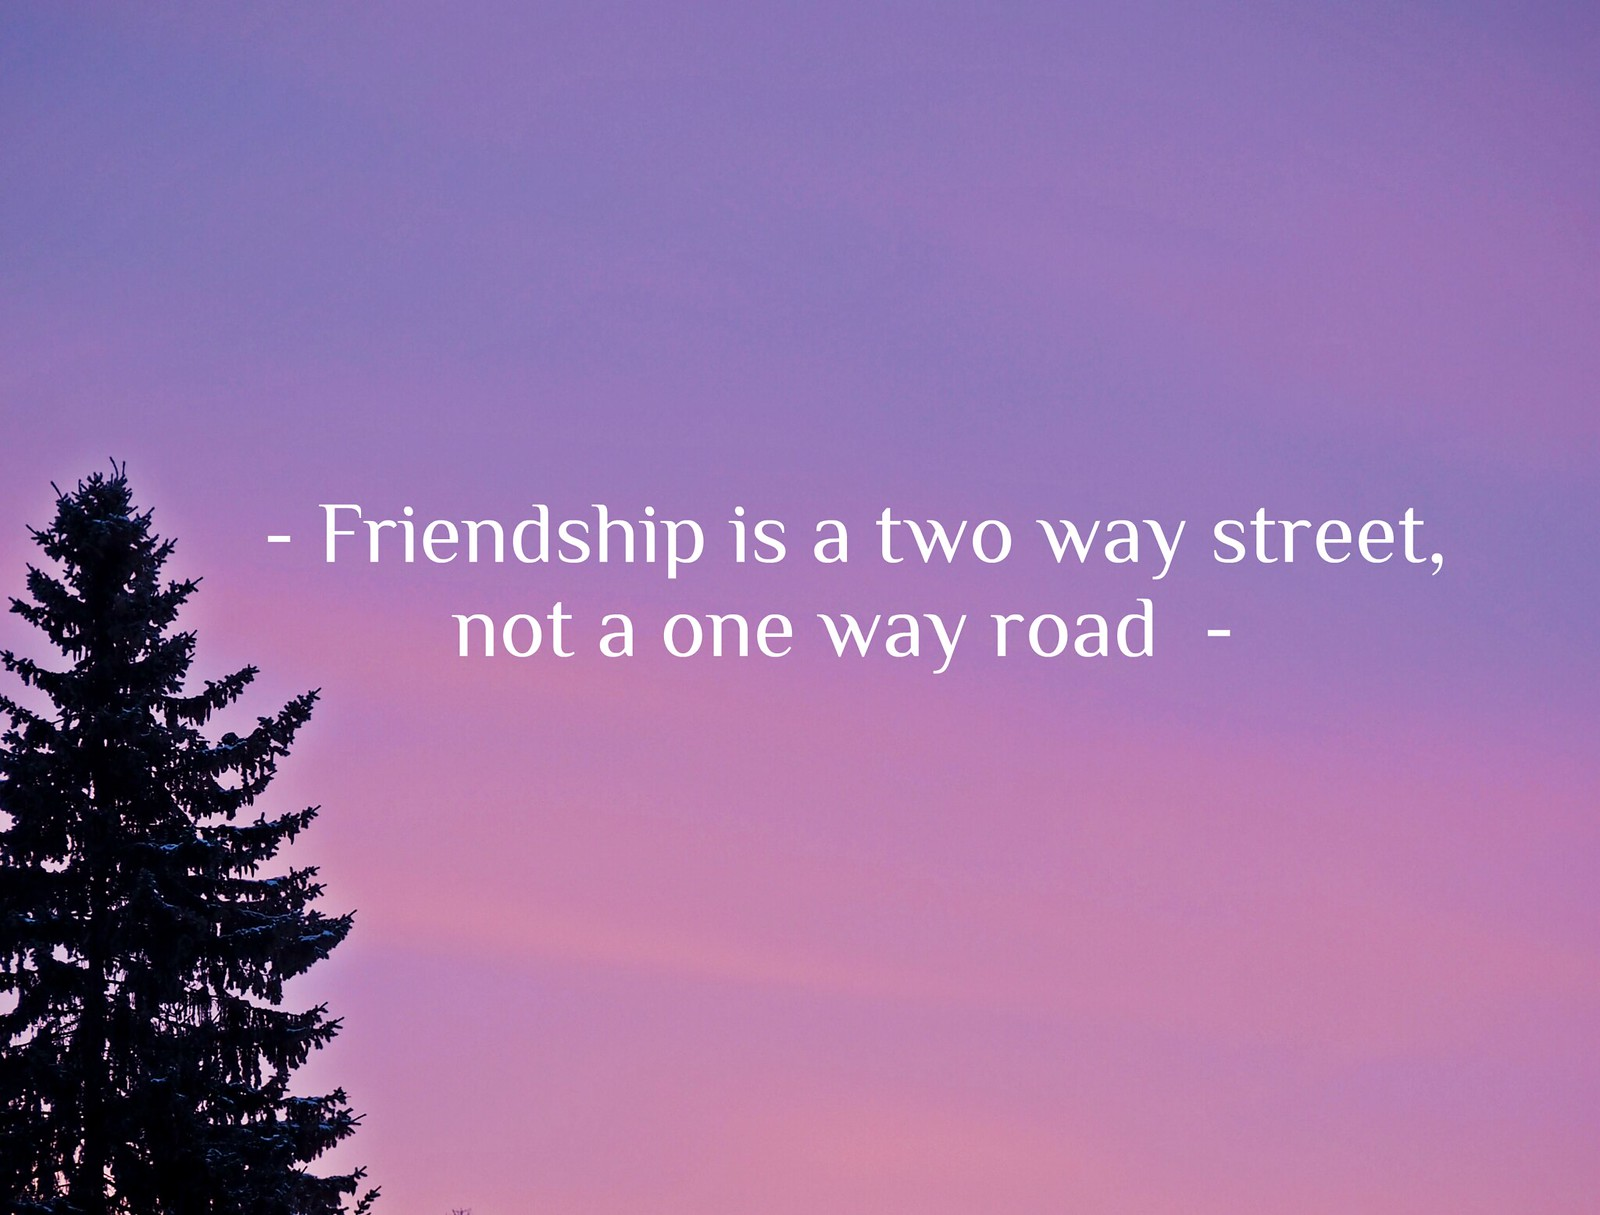 friendship-quotes-sky